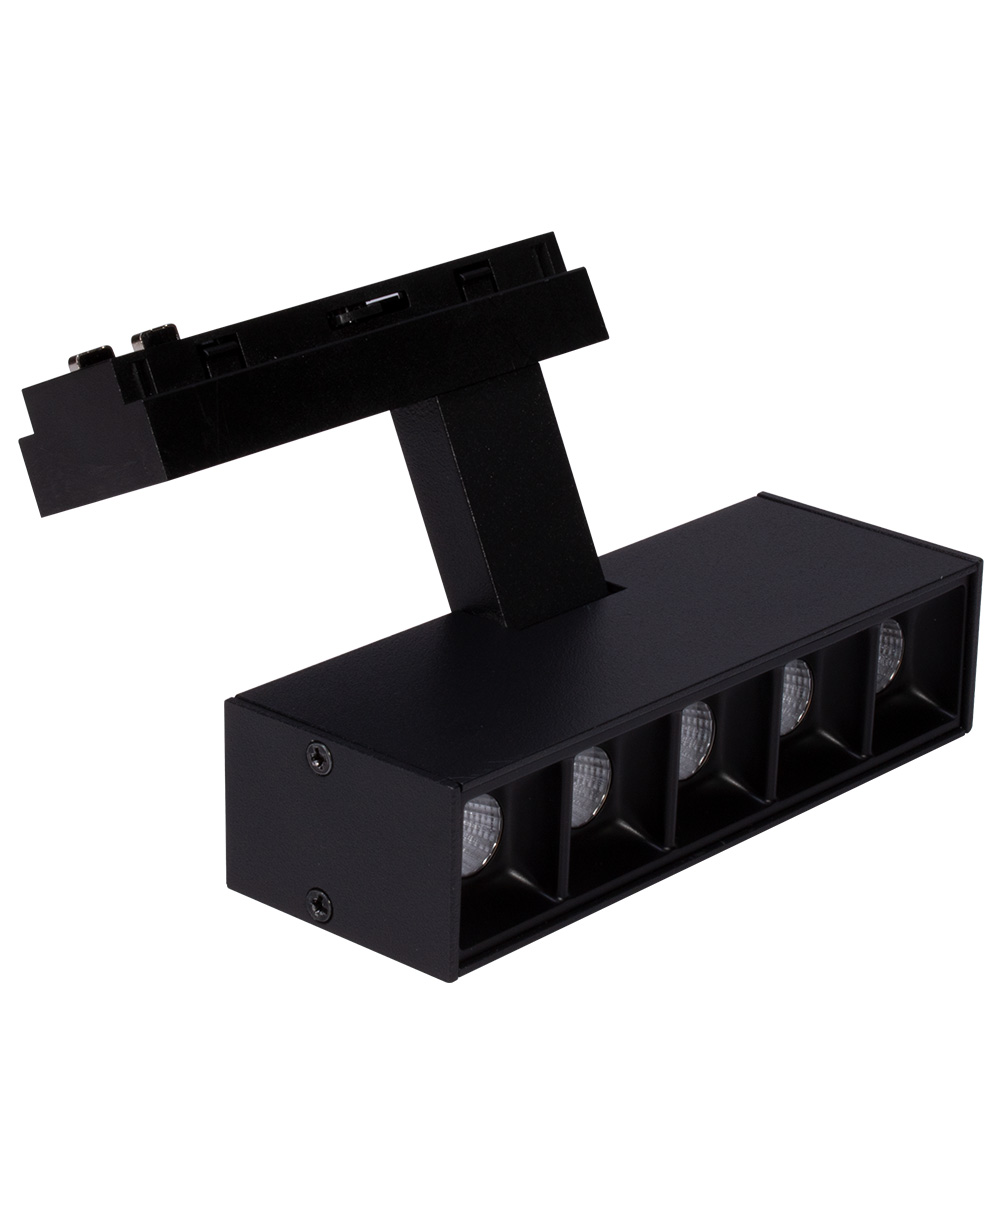 KLICK Linear Adjustable Multisource